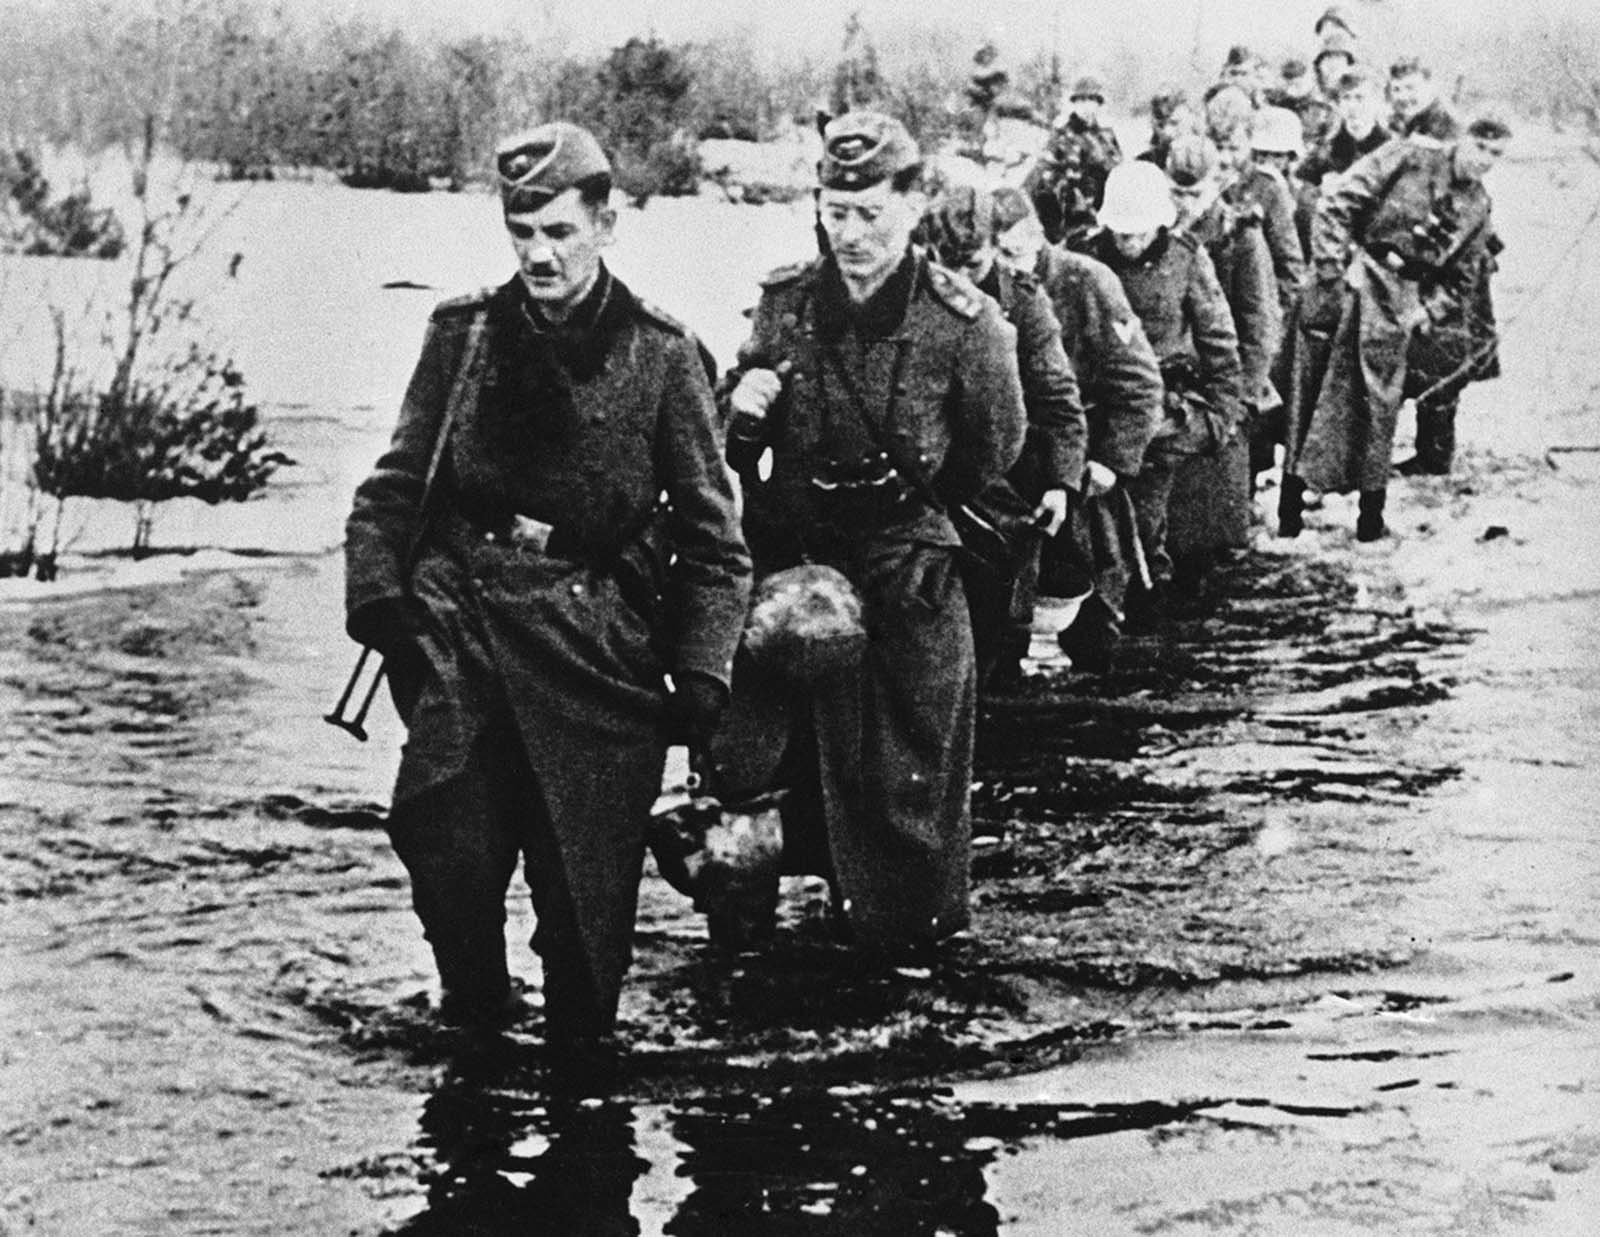 he appalling conditions ruling on the Russian front following the thaw when the winter snows melted and resulted in widespread floods on May 23, 1942. German soldiers wade through icy water which is knee deep, somewhere in Russia.